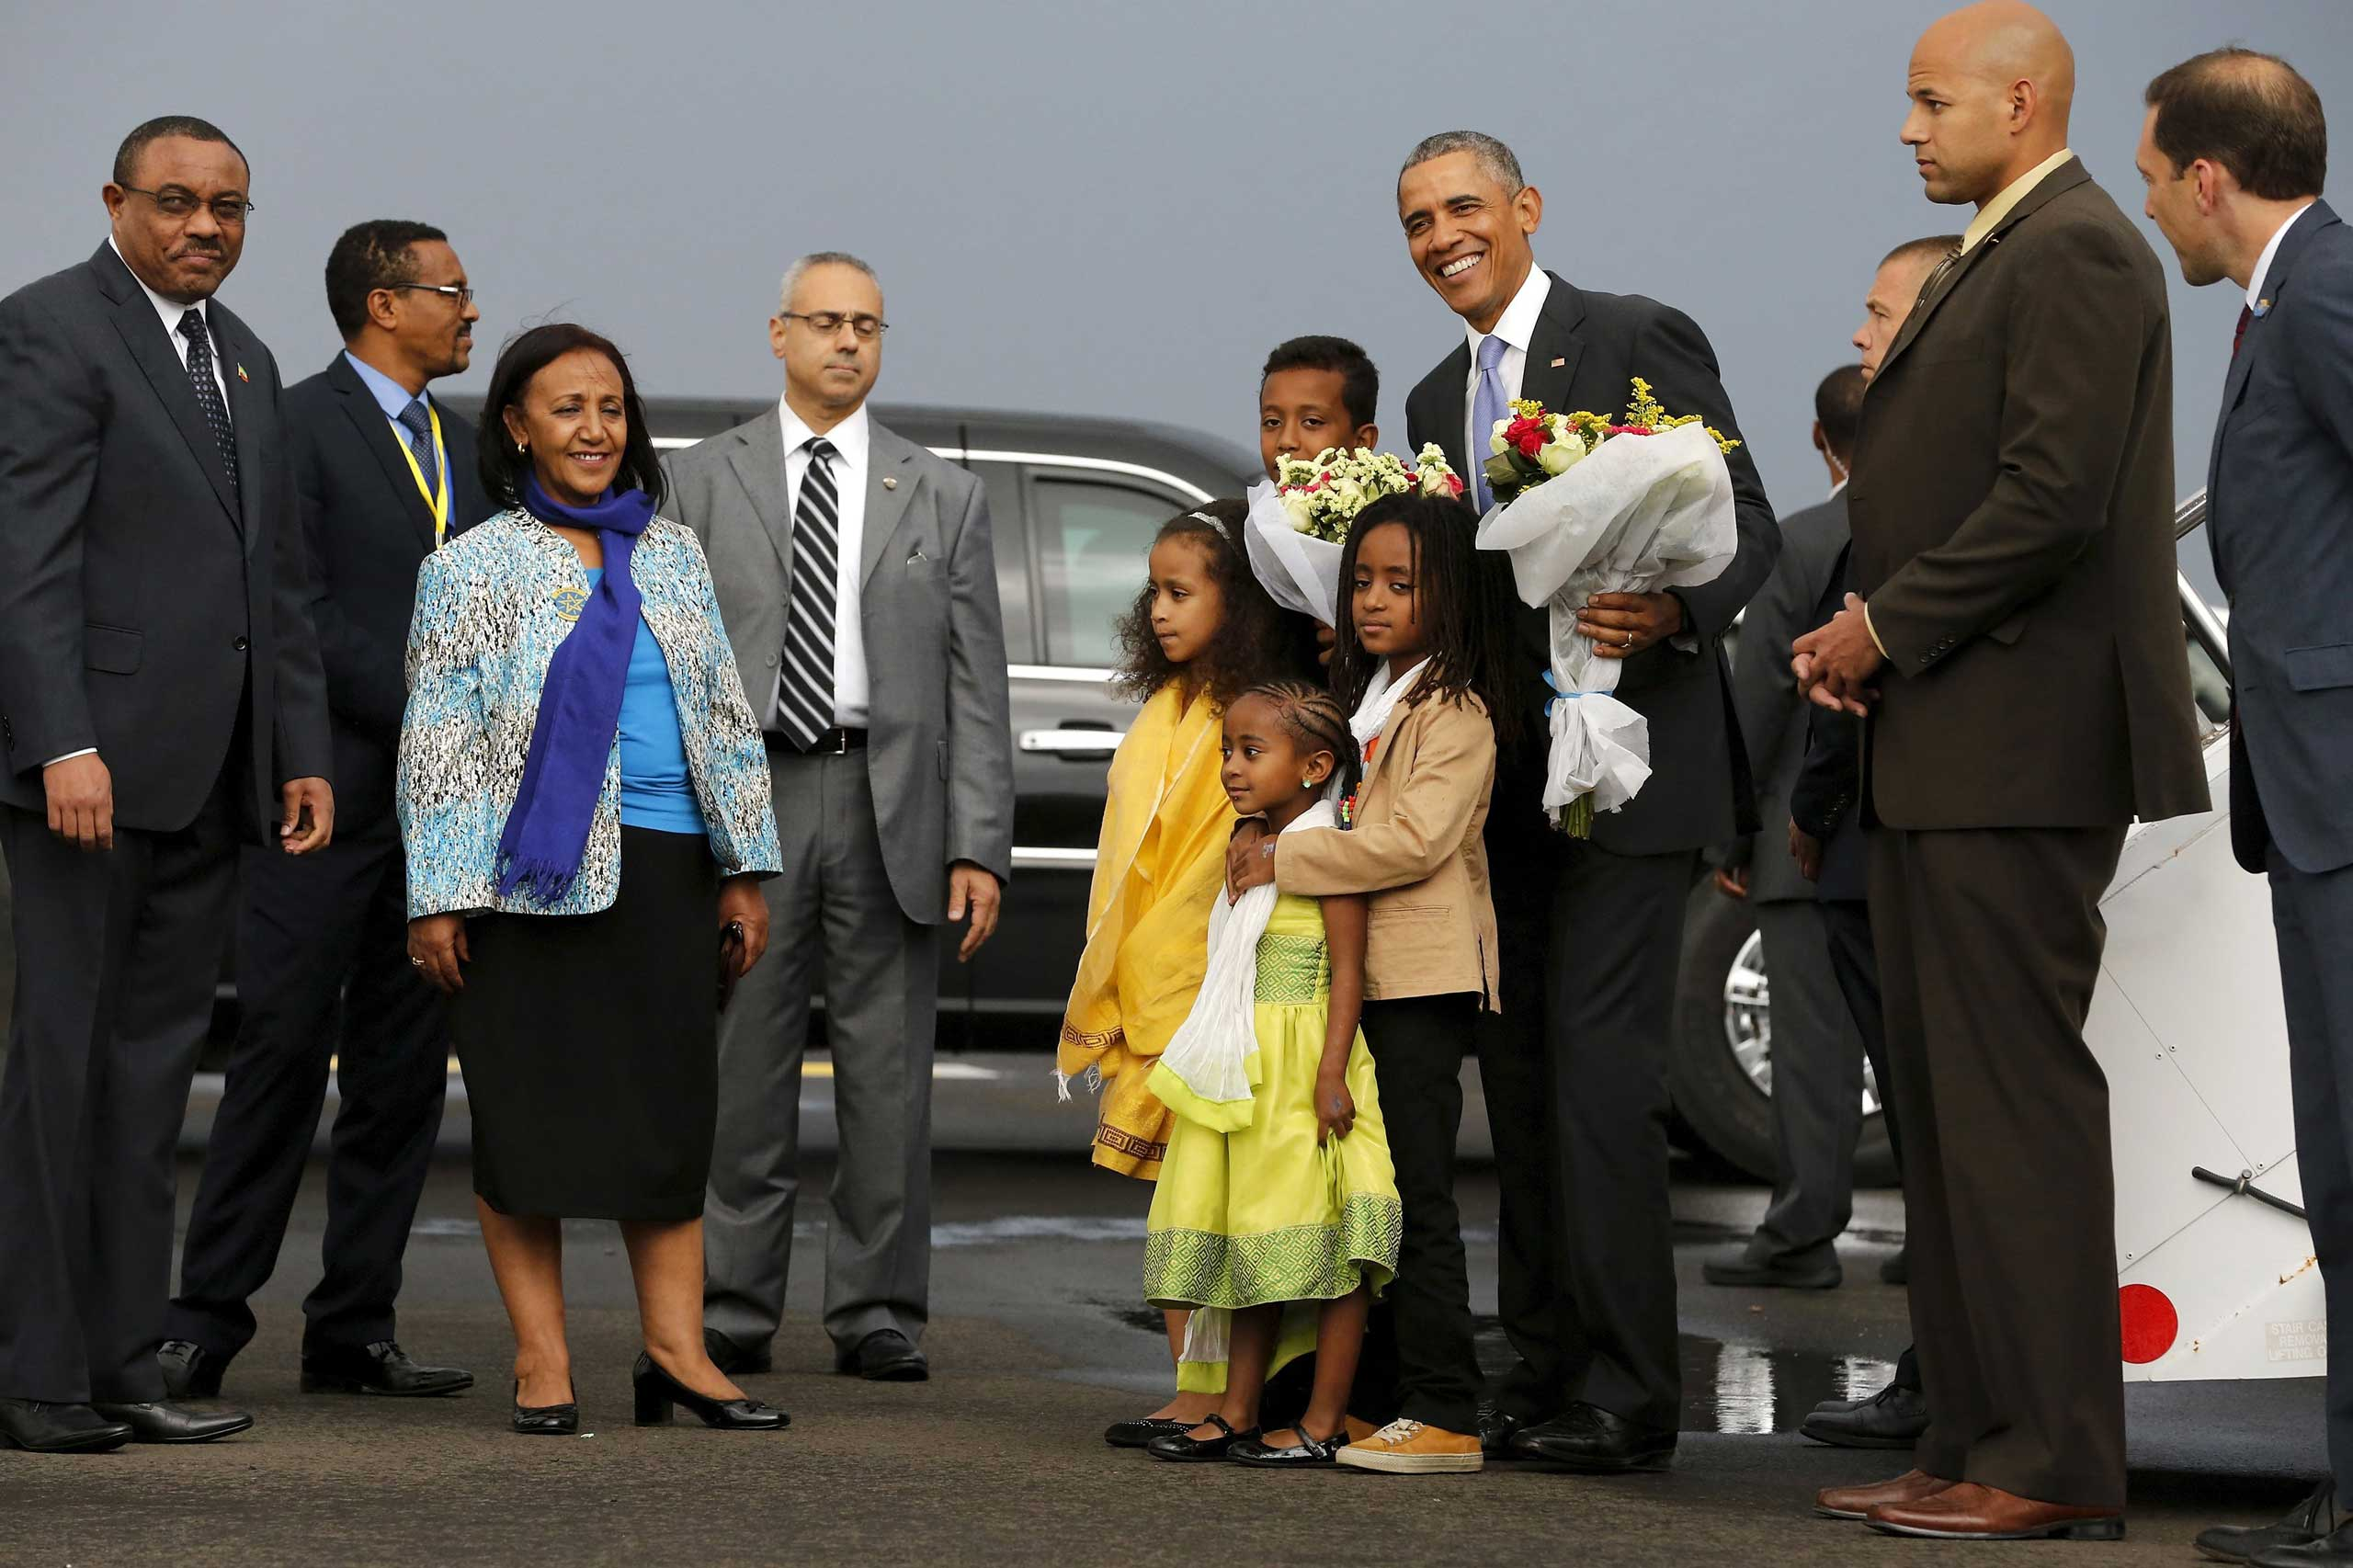 President Barack Obama receives flowers from children, with Ethiopia's Prime Minister Hailemariam Desalegn, as he arrives at Bole International Airport in Addis Ababa on July 26, 2015.